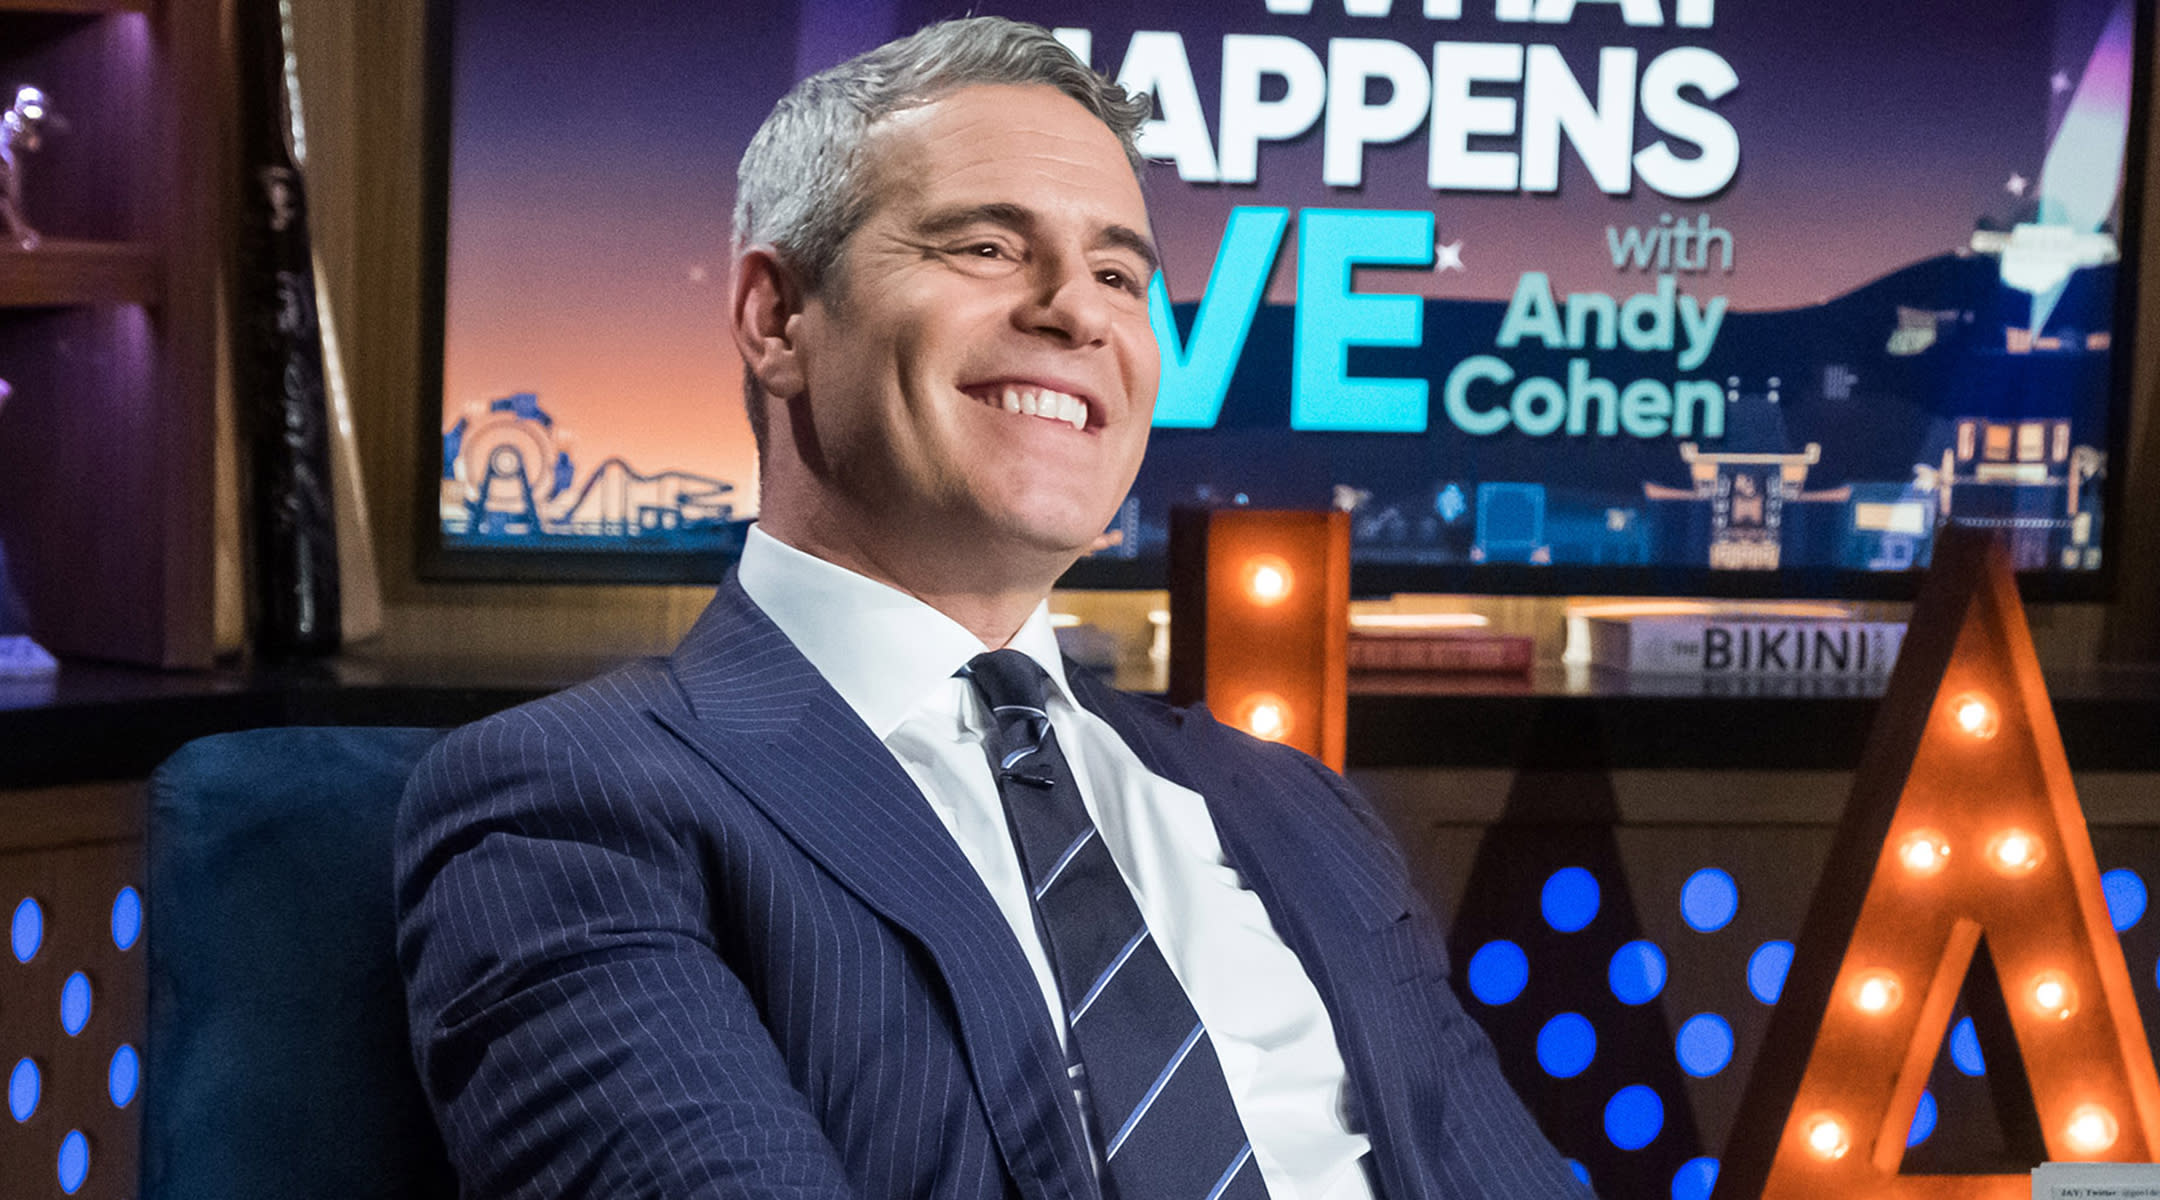 Andy Cohen welcomes a new baby boy via surrogate.